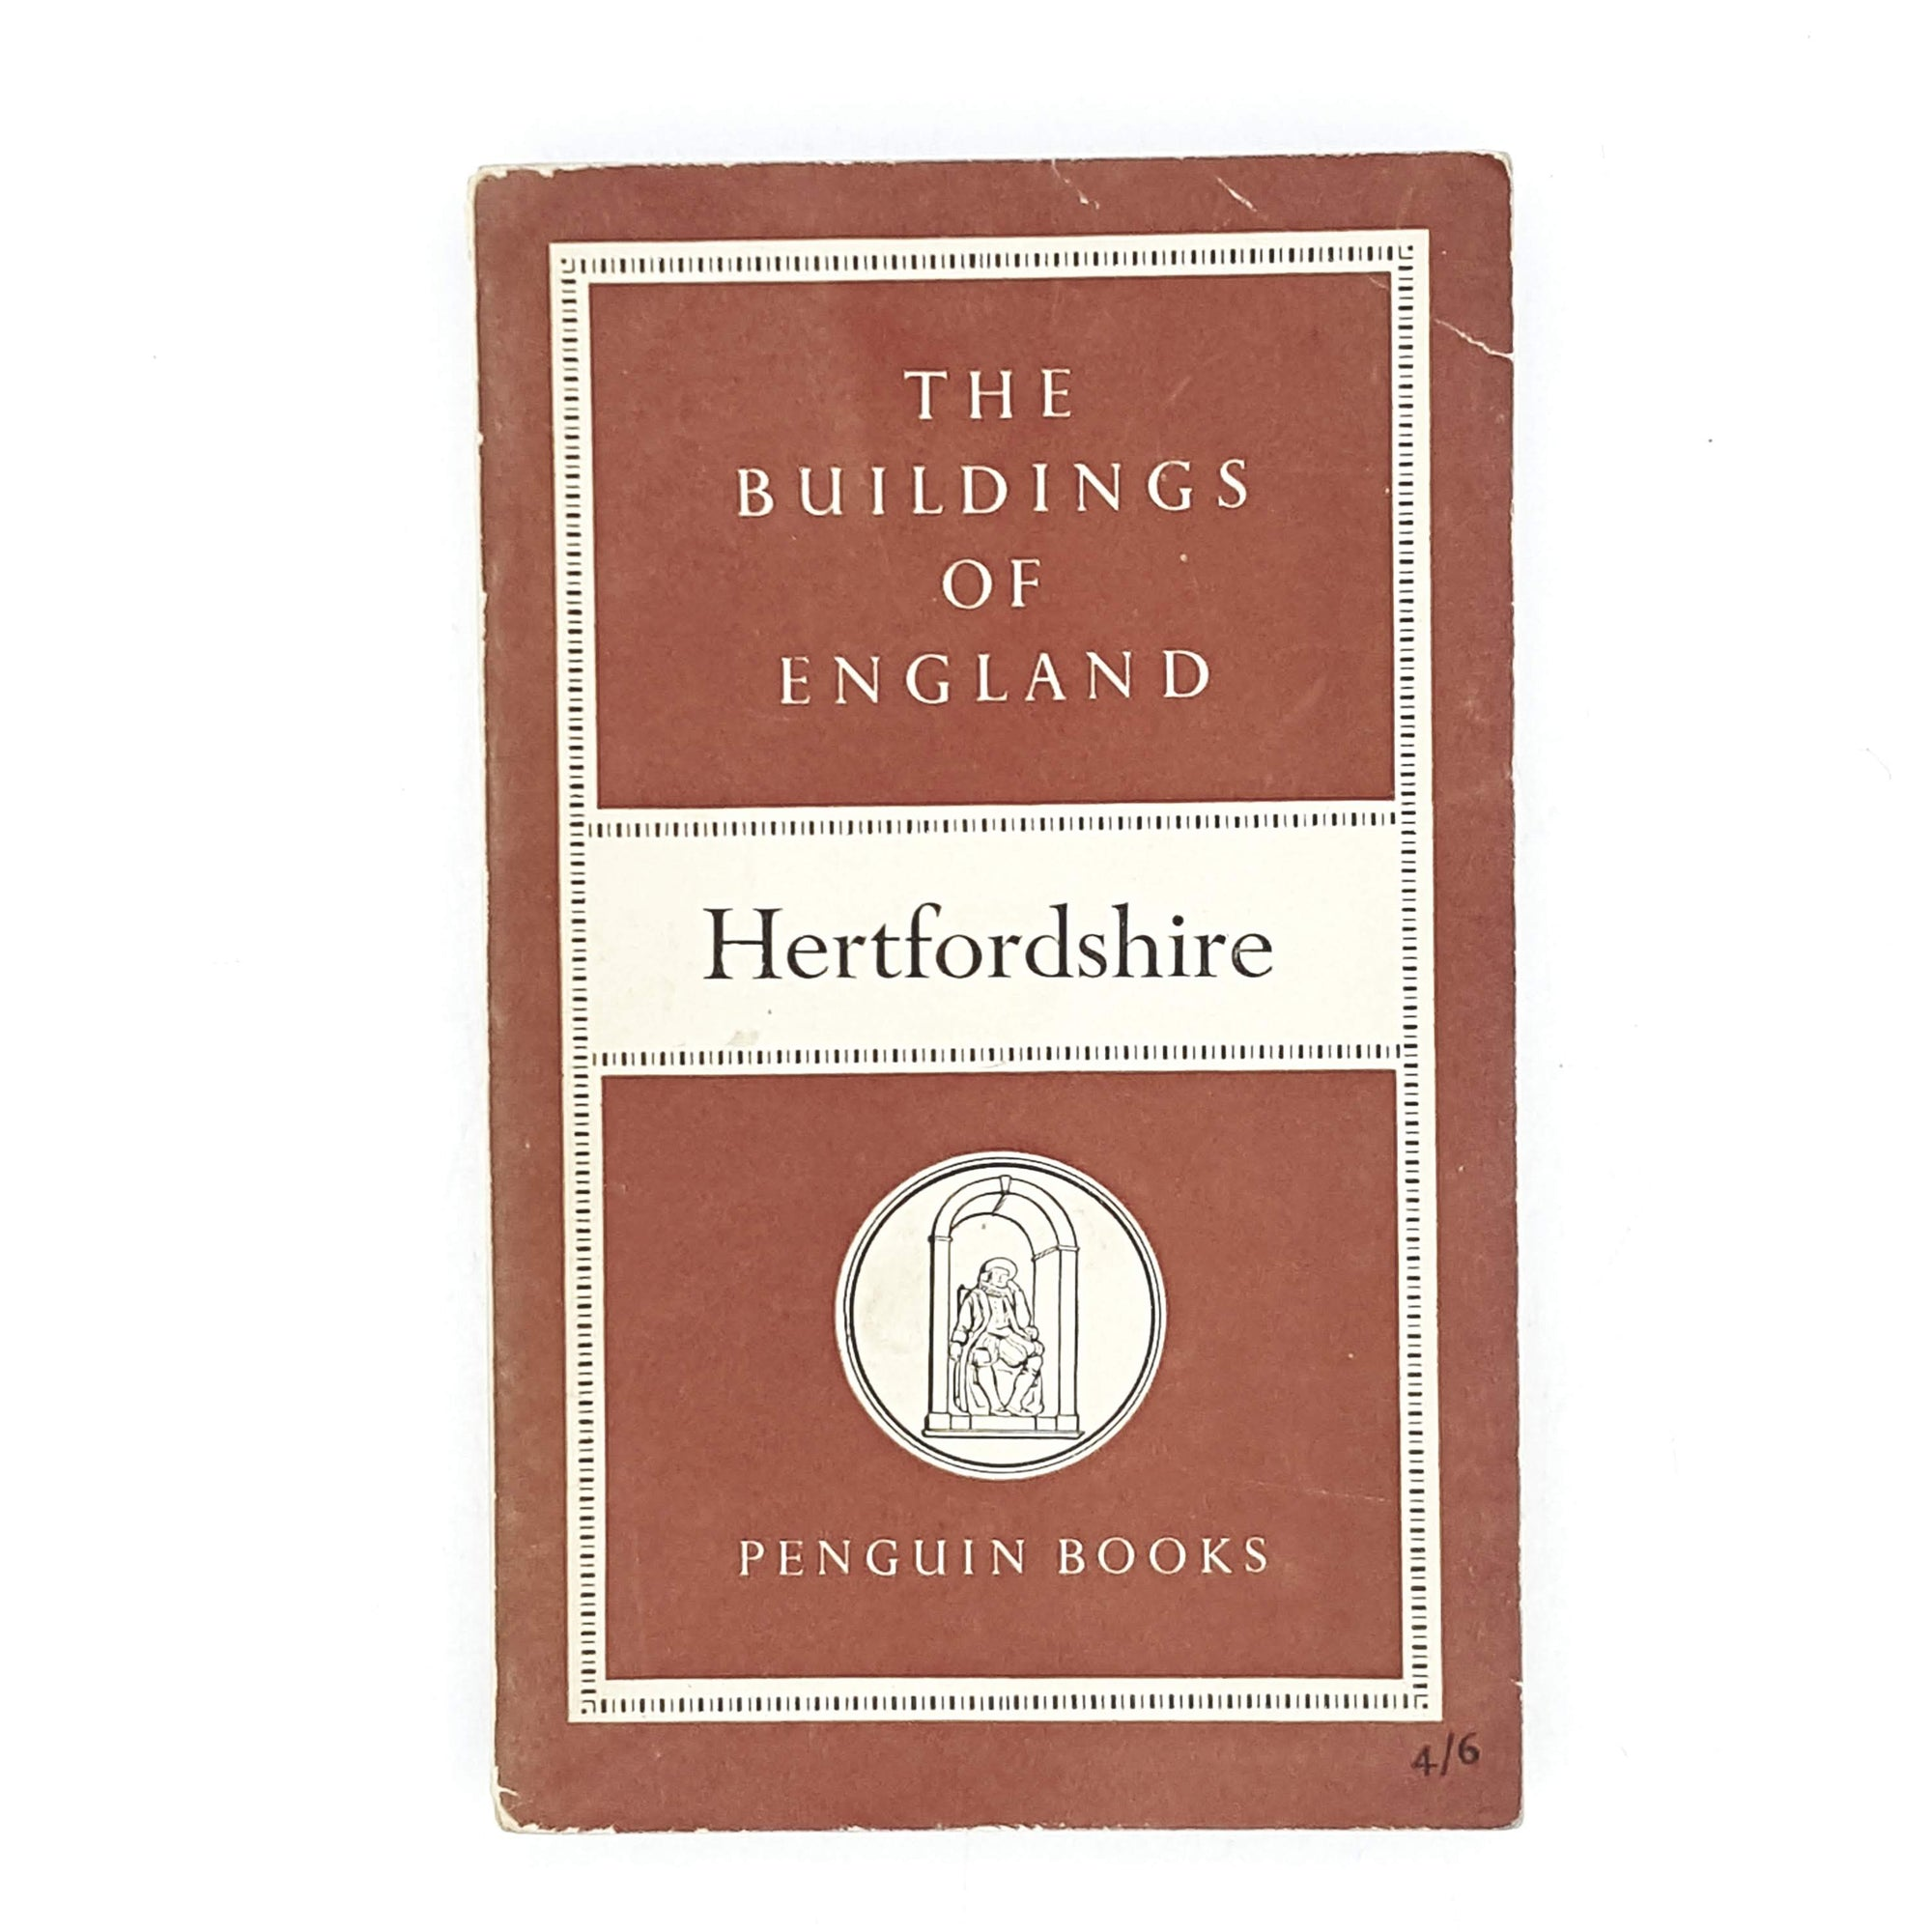 The Buildings of England: Hertfordshire by Nikolaus Pevsner 1953